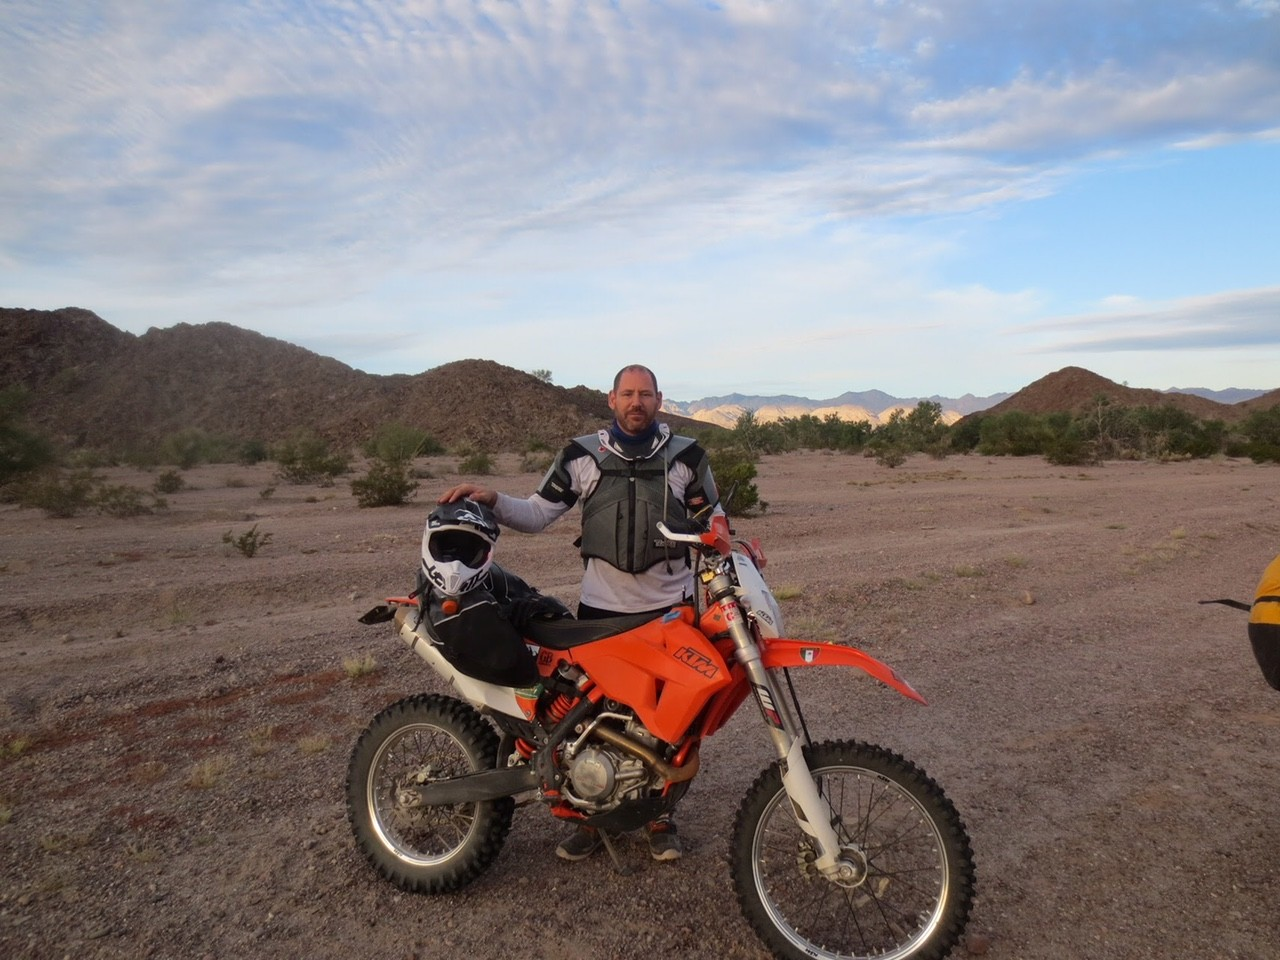 KTM 500 EXC in Baja with Giant Loop's Coyote Saddlebag